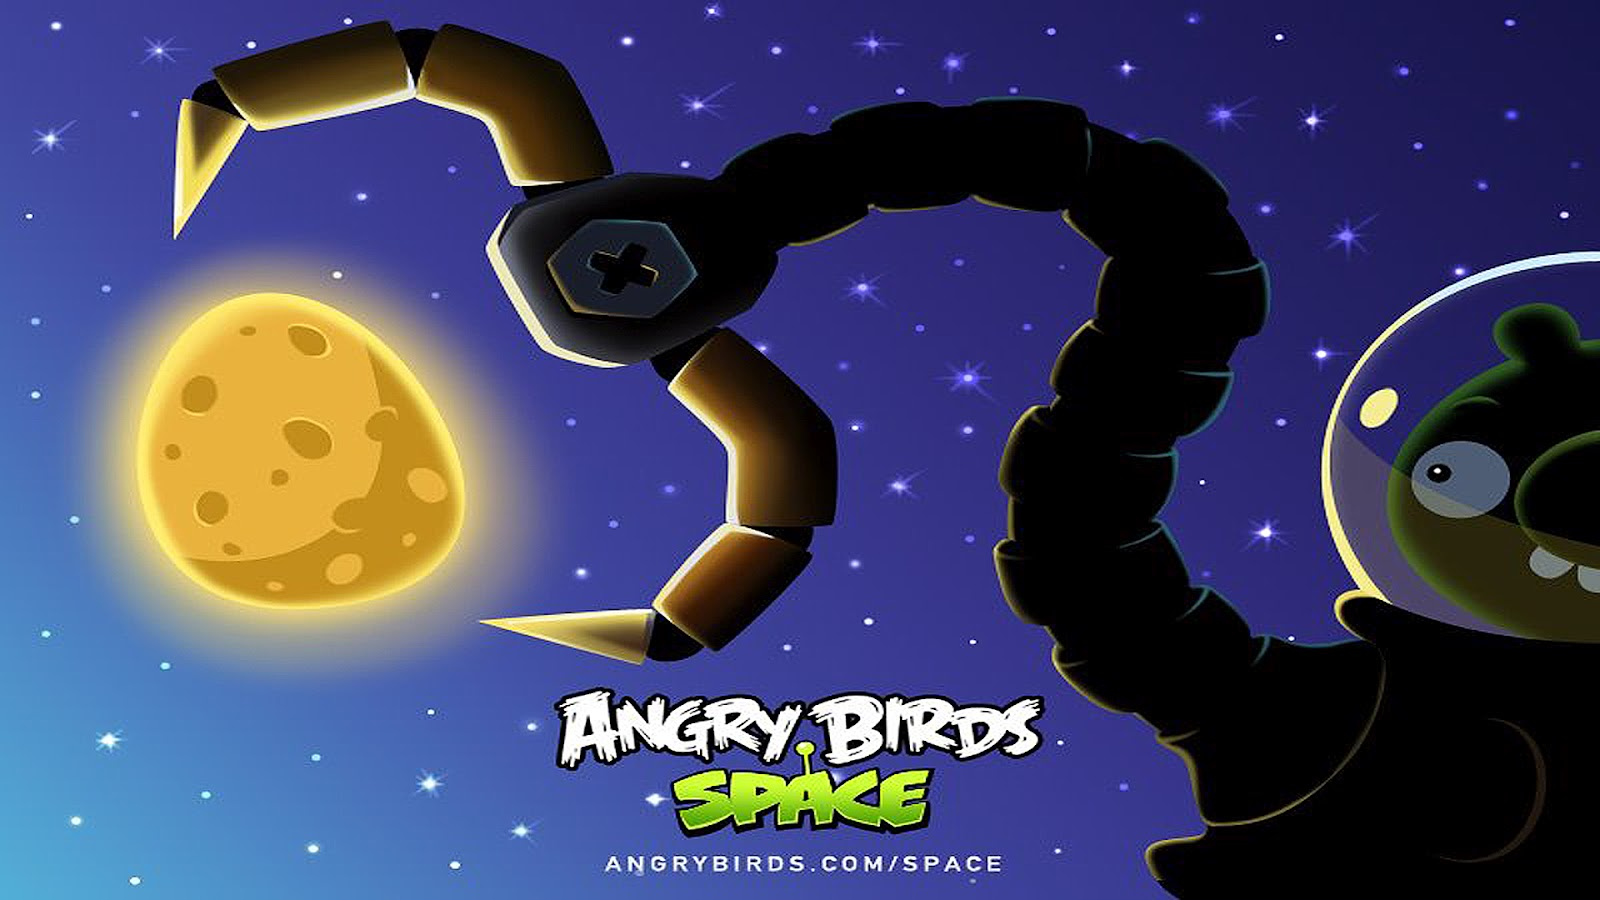 Angry birds space hd wallpapers hd wallpapers - Angry birds space gratuit ...